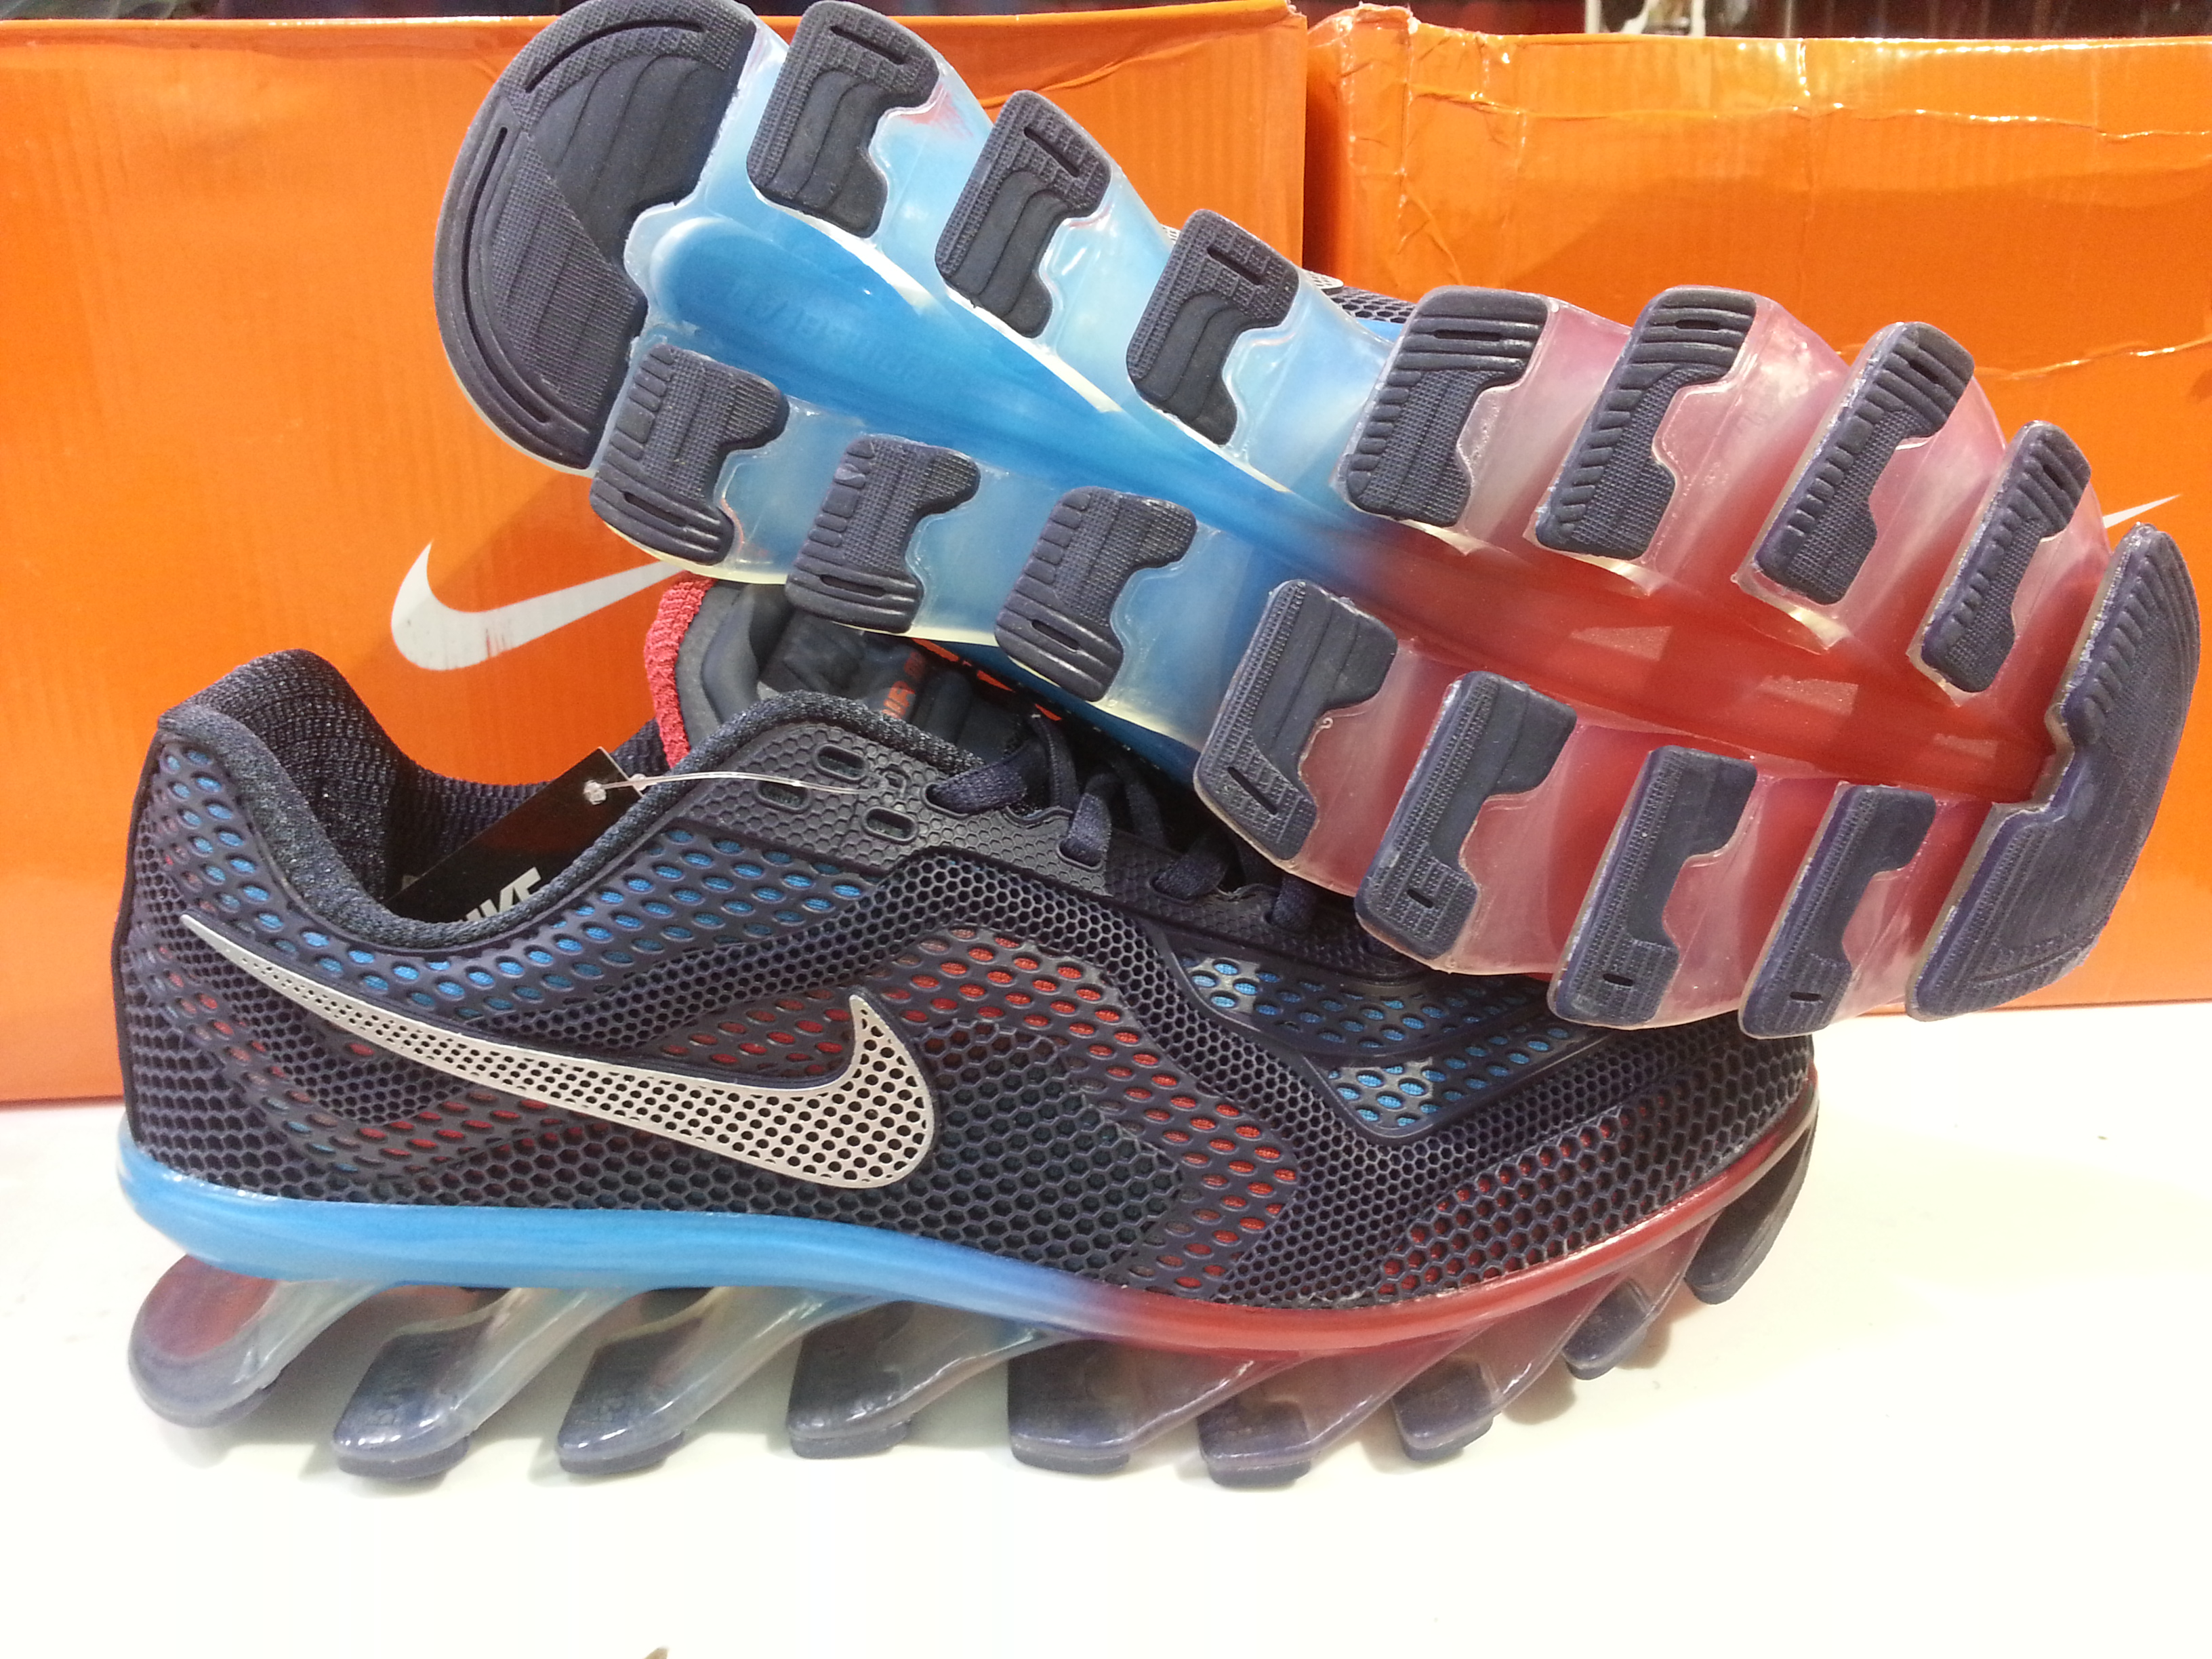 Nike Blade Shoes Online